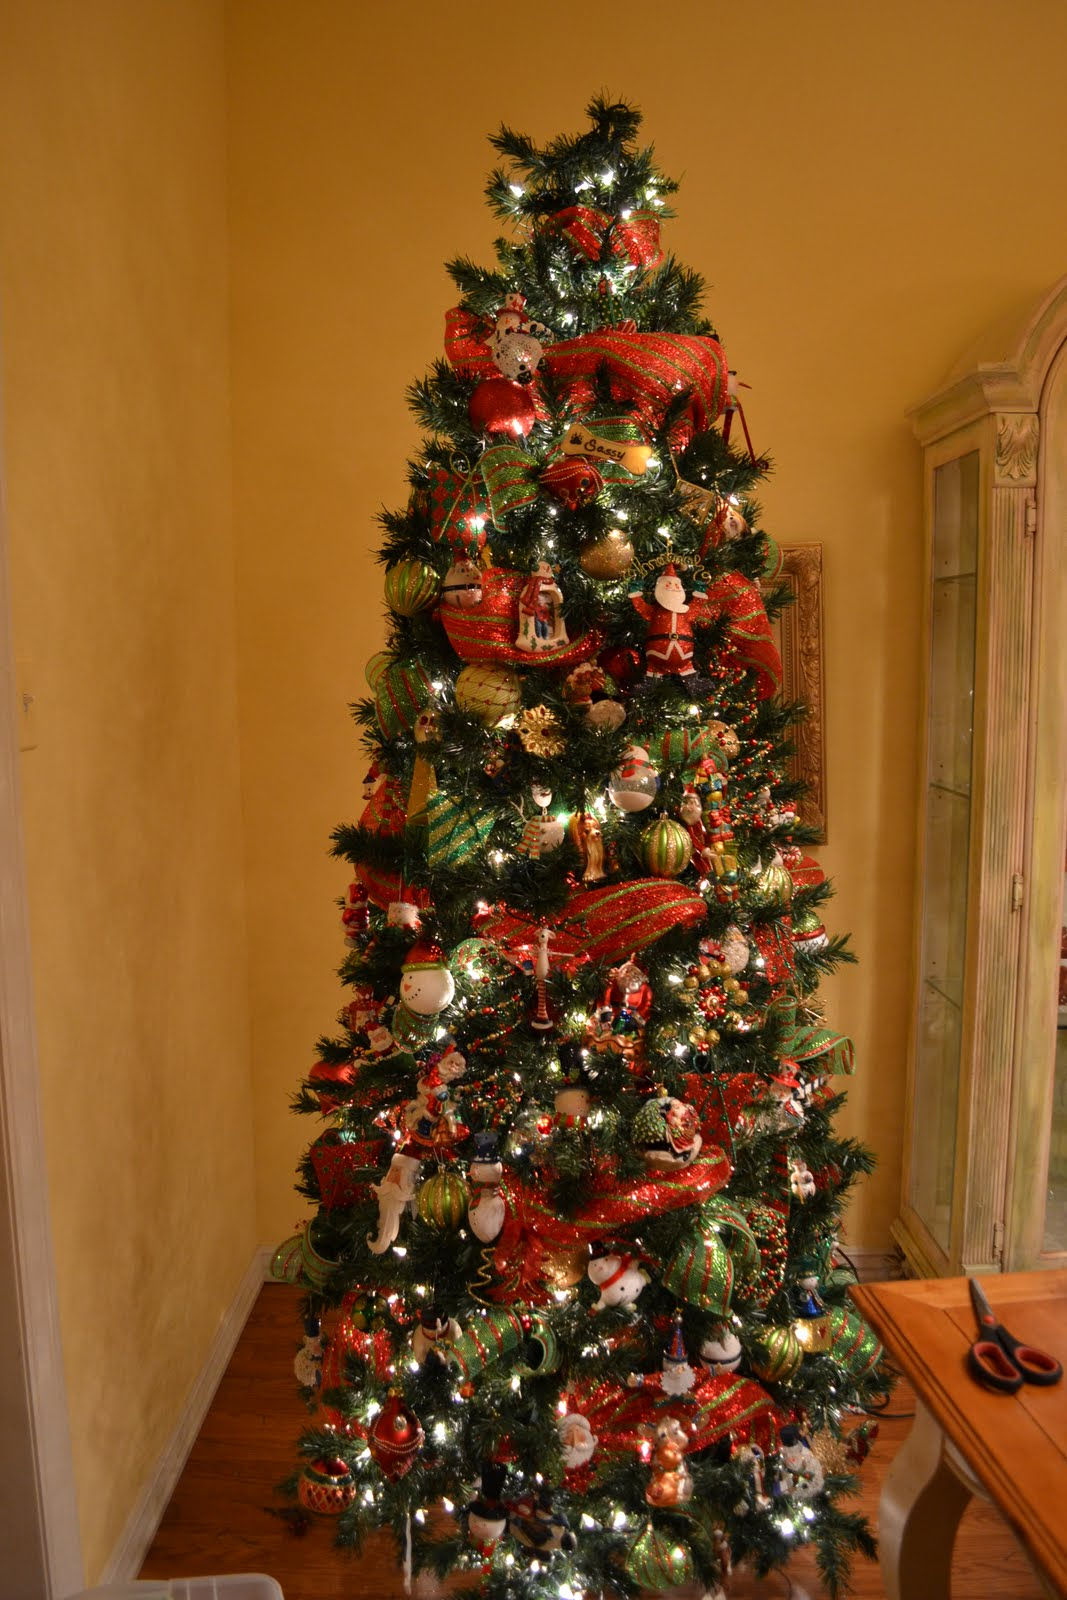 Christmas Tree Decorating With Wire Ribbon : Putting mesh on xmas tree review ebooks